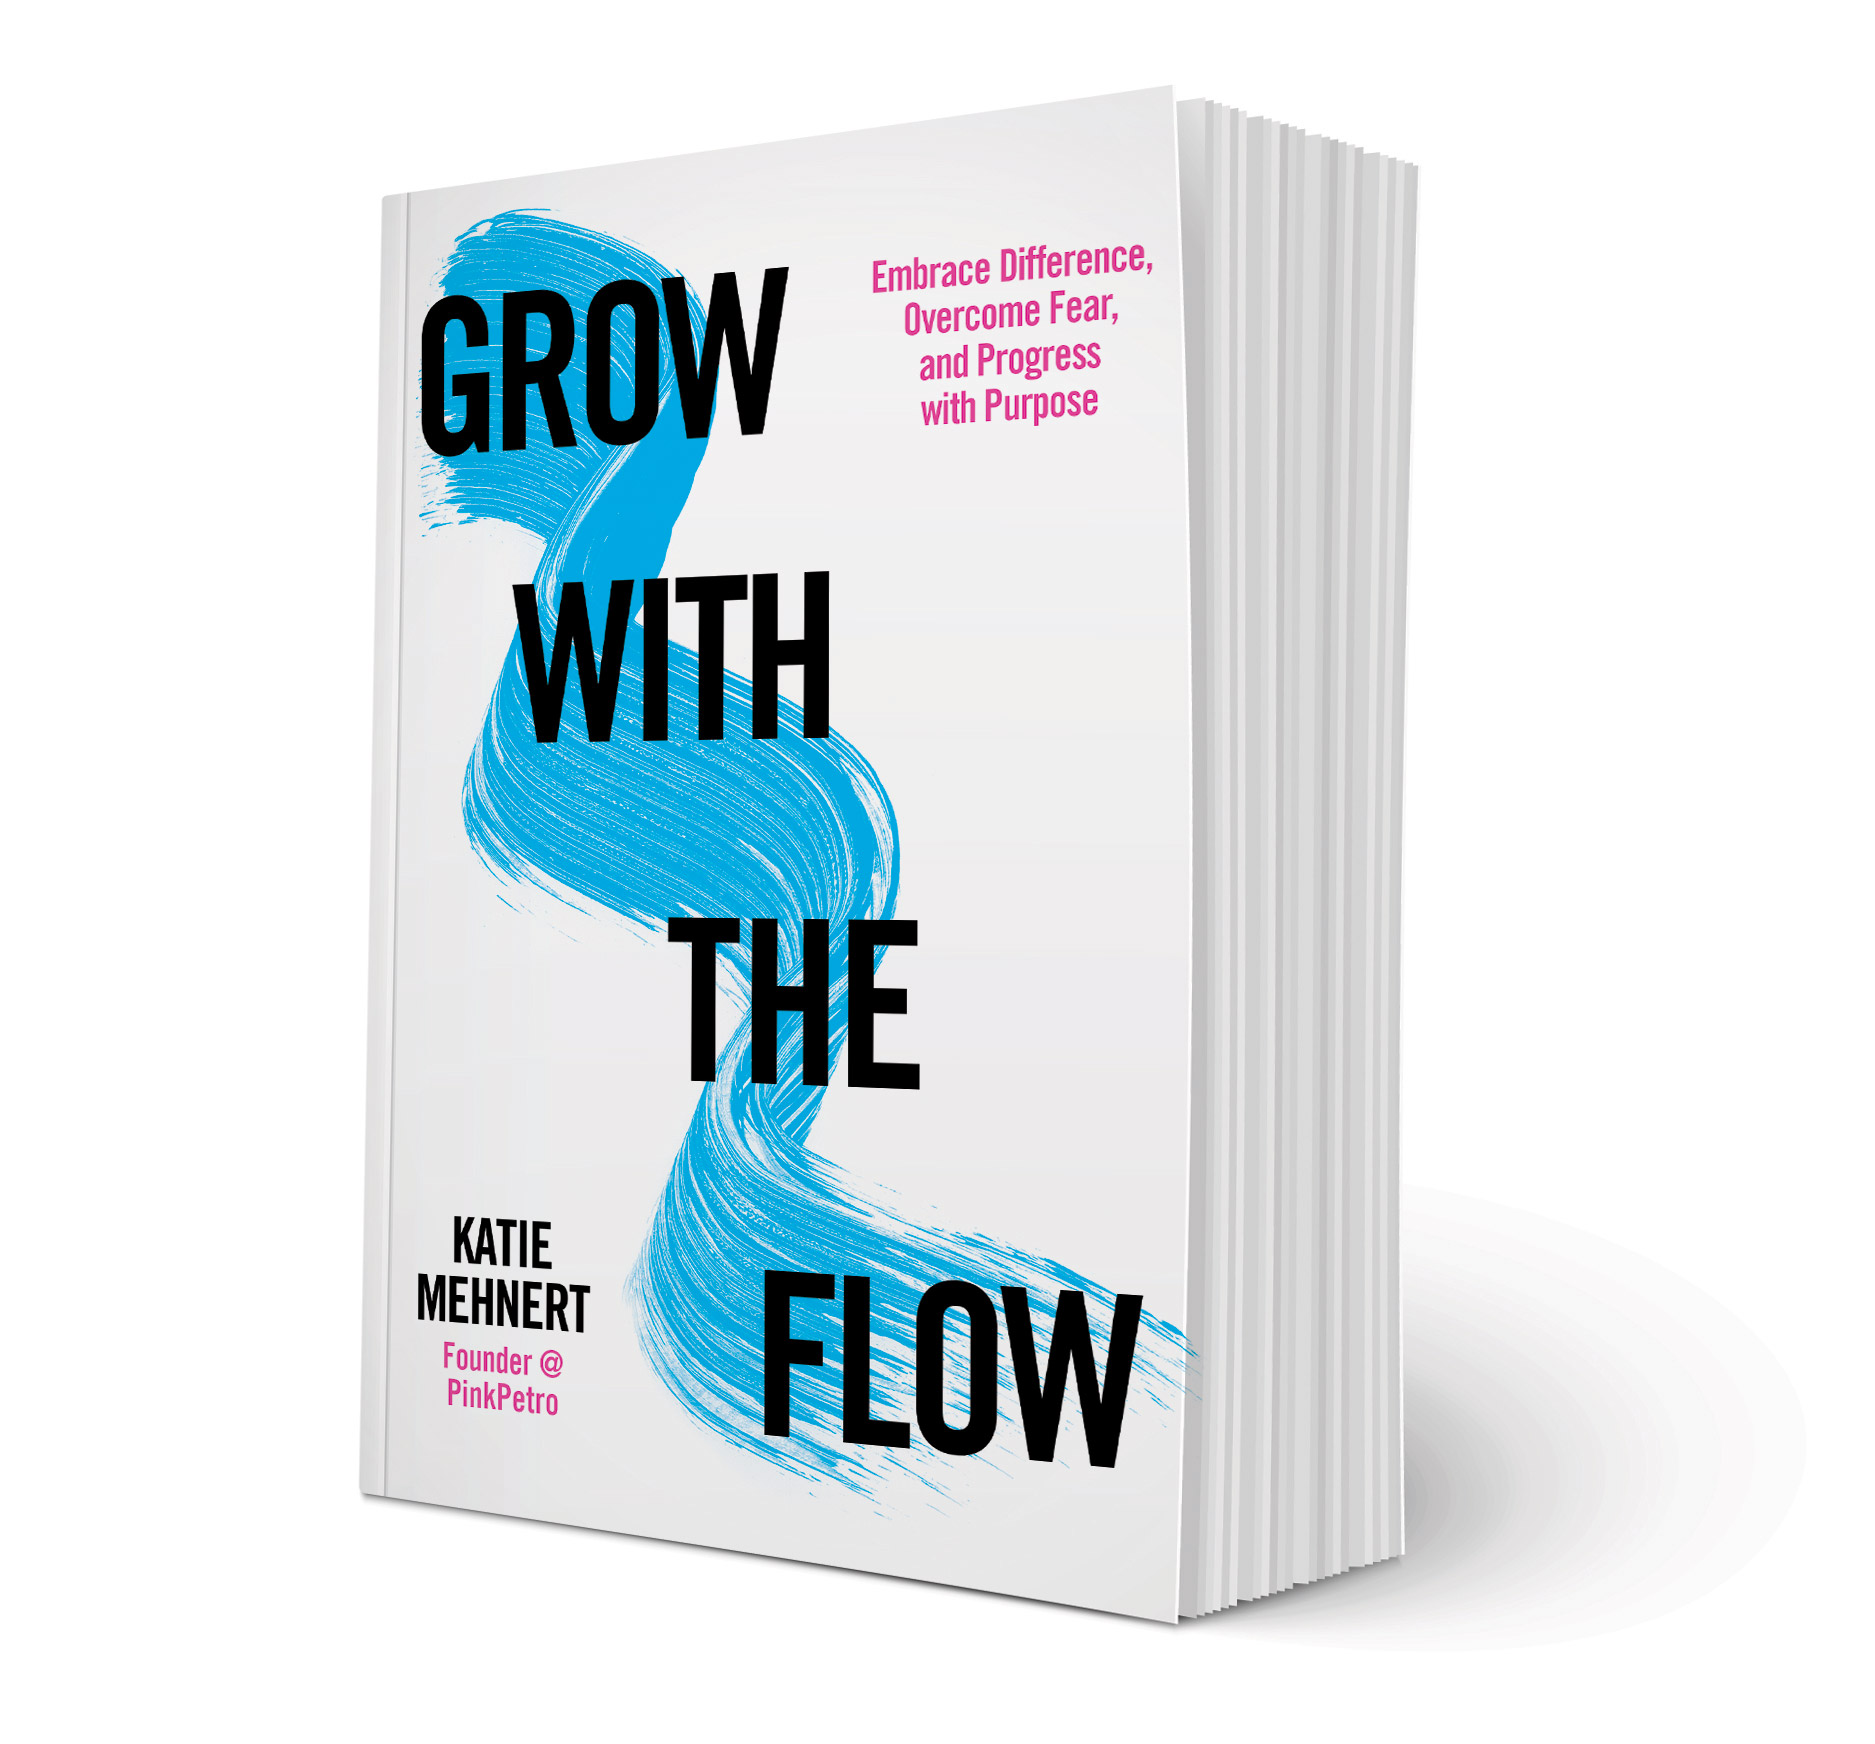 Grow with the Flow by Katie Mehnert